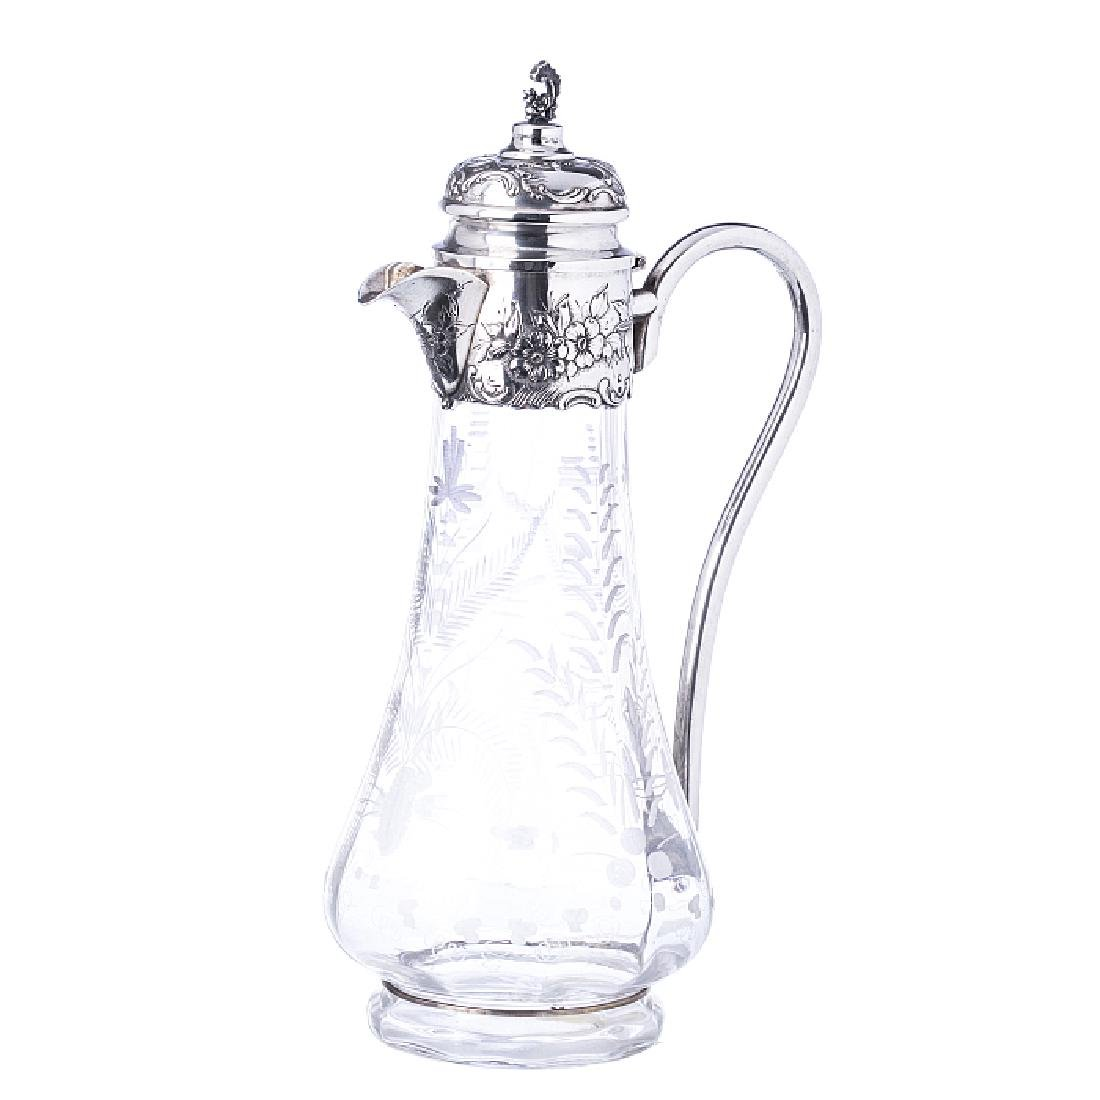 Jug in glass and silver